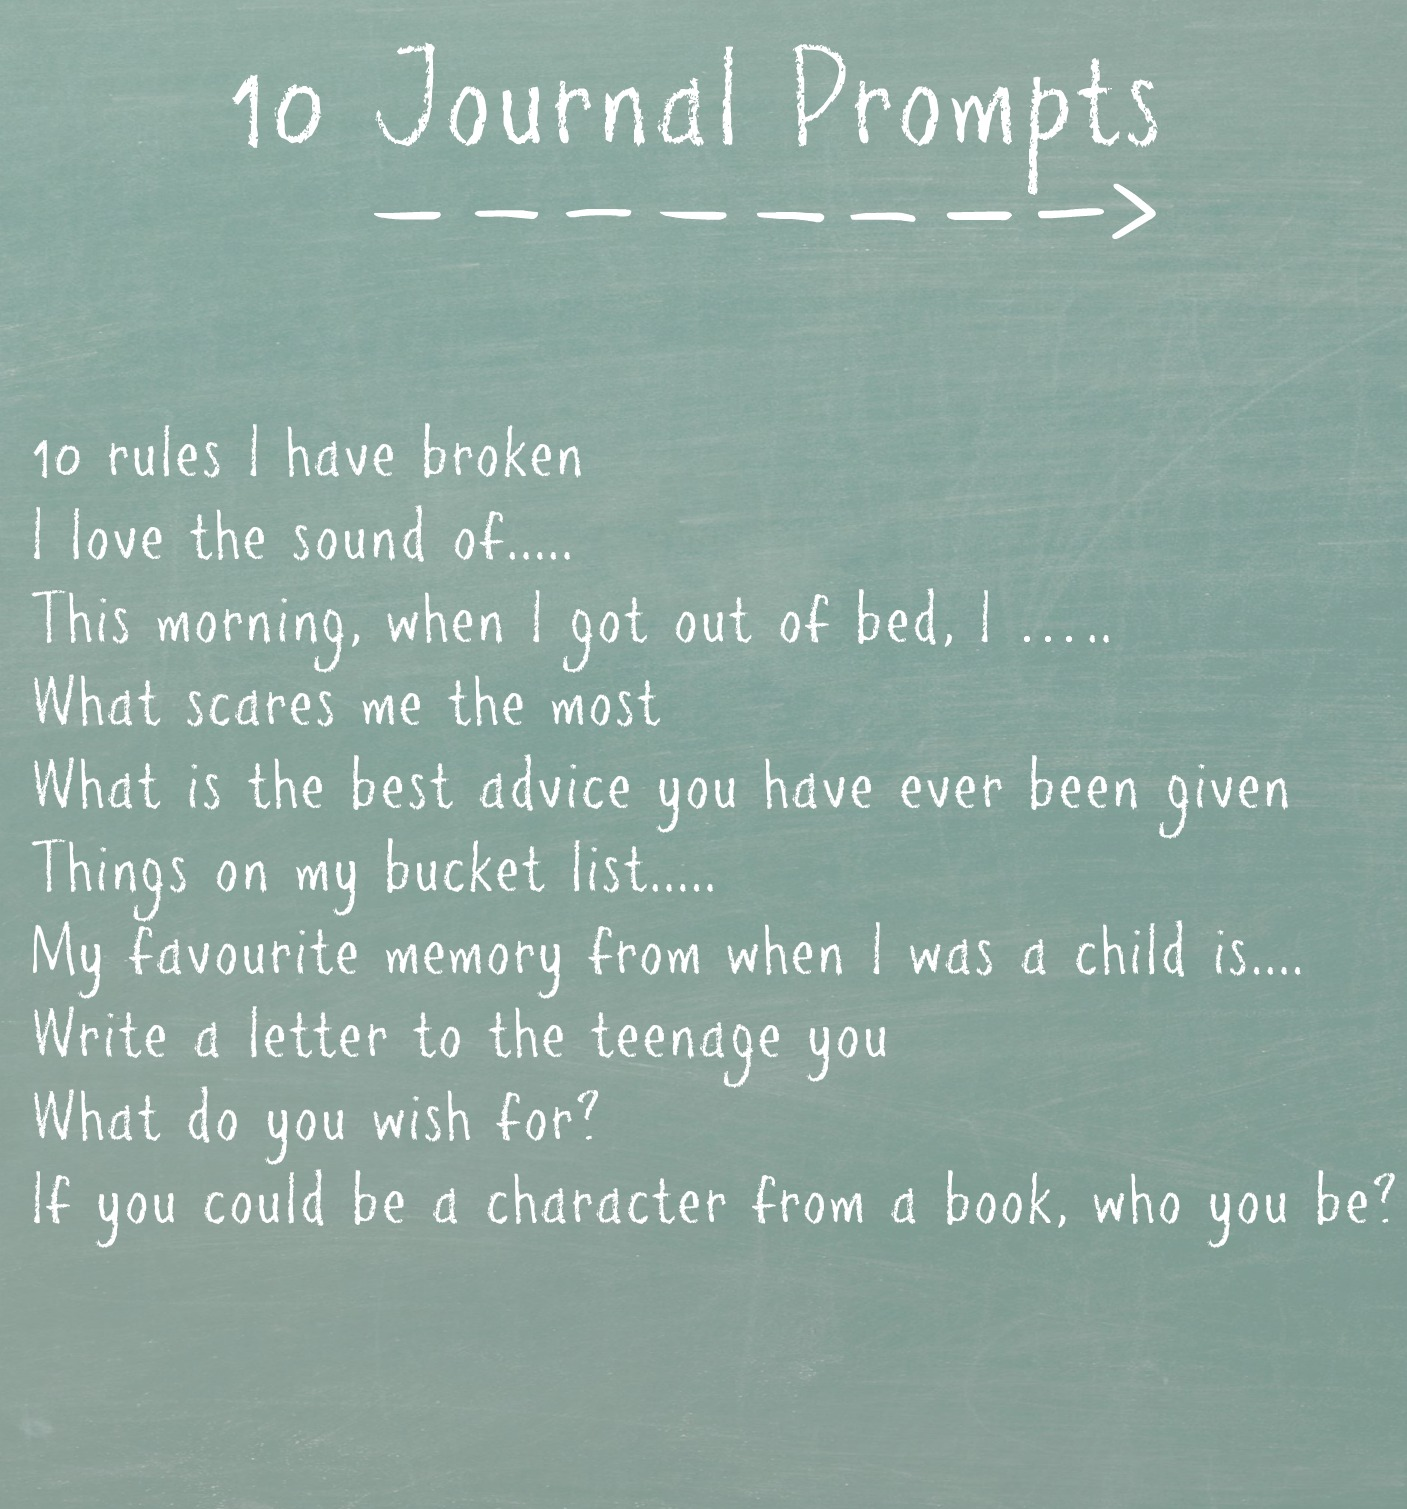 prompts for journal writing